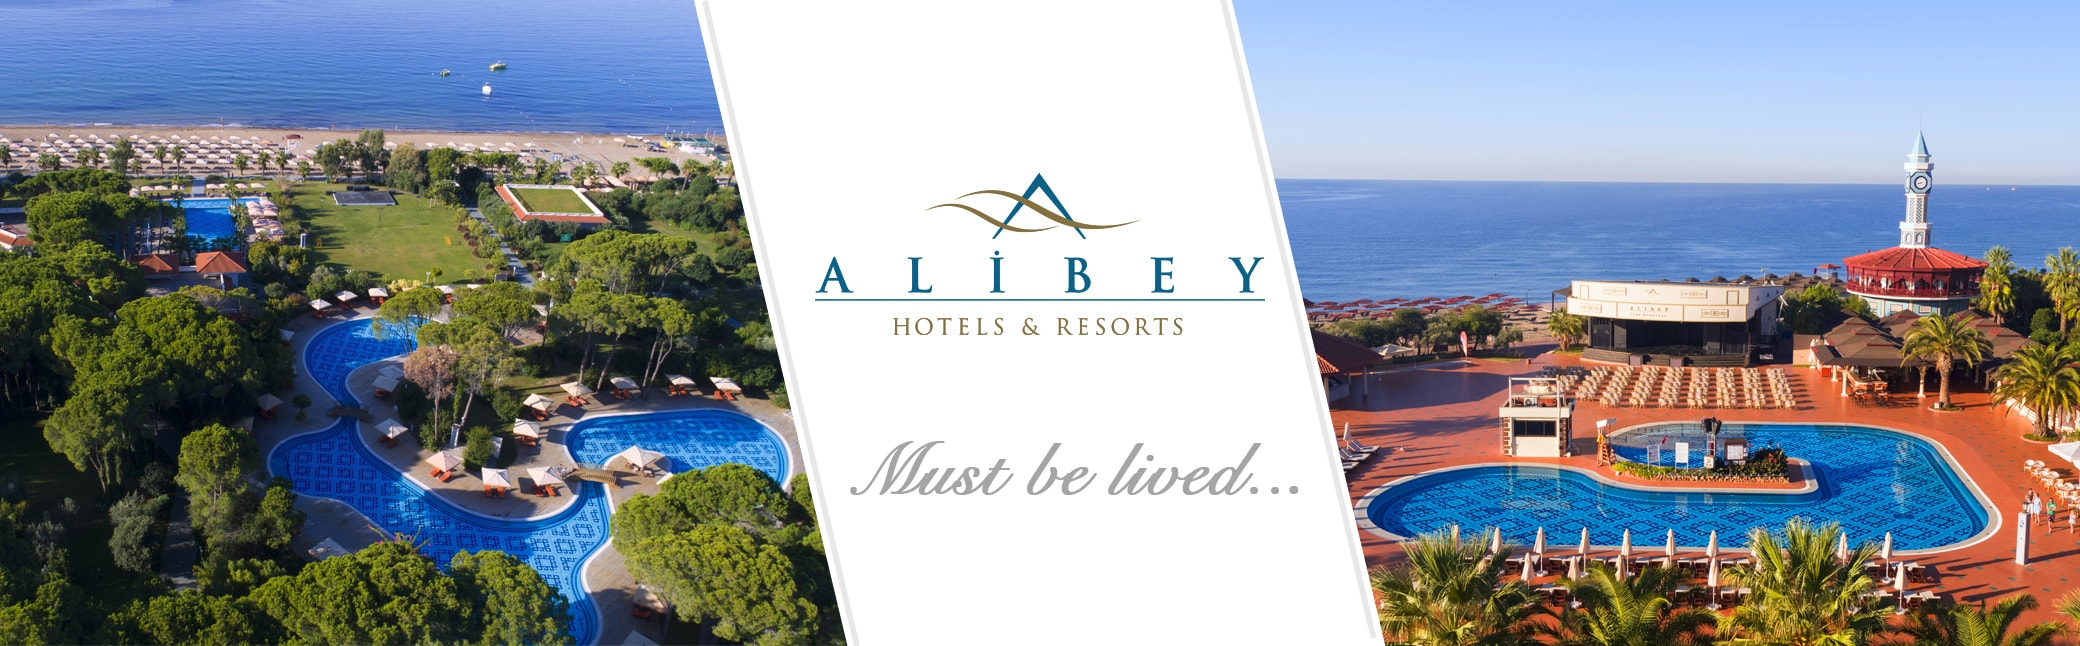 Alibey Hotels Resort